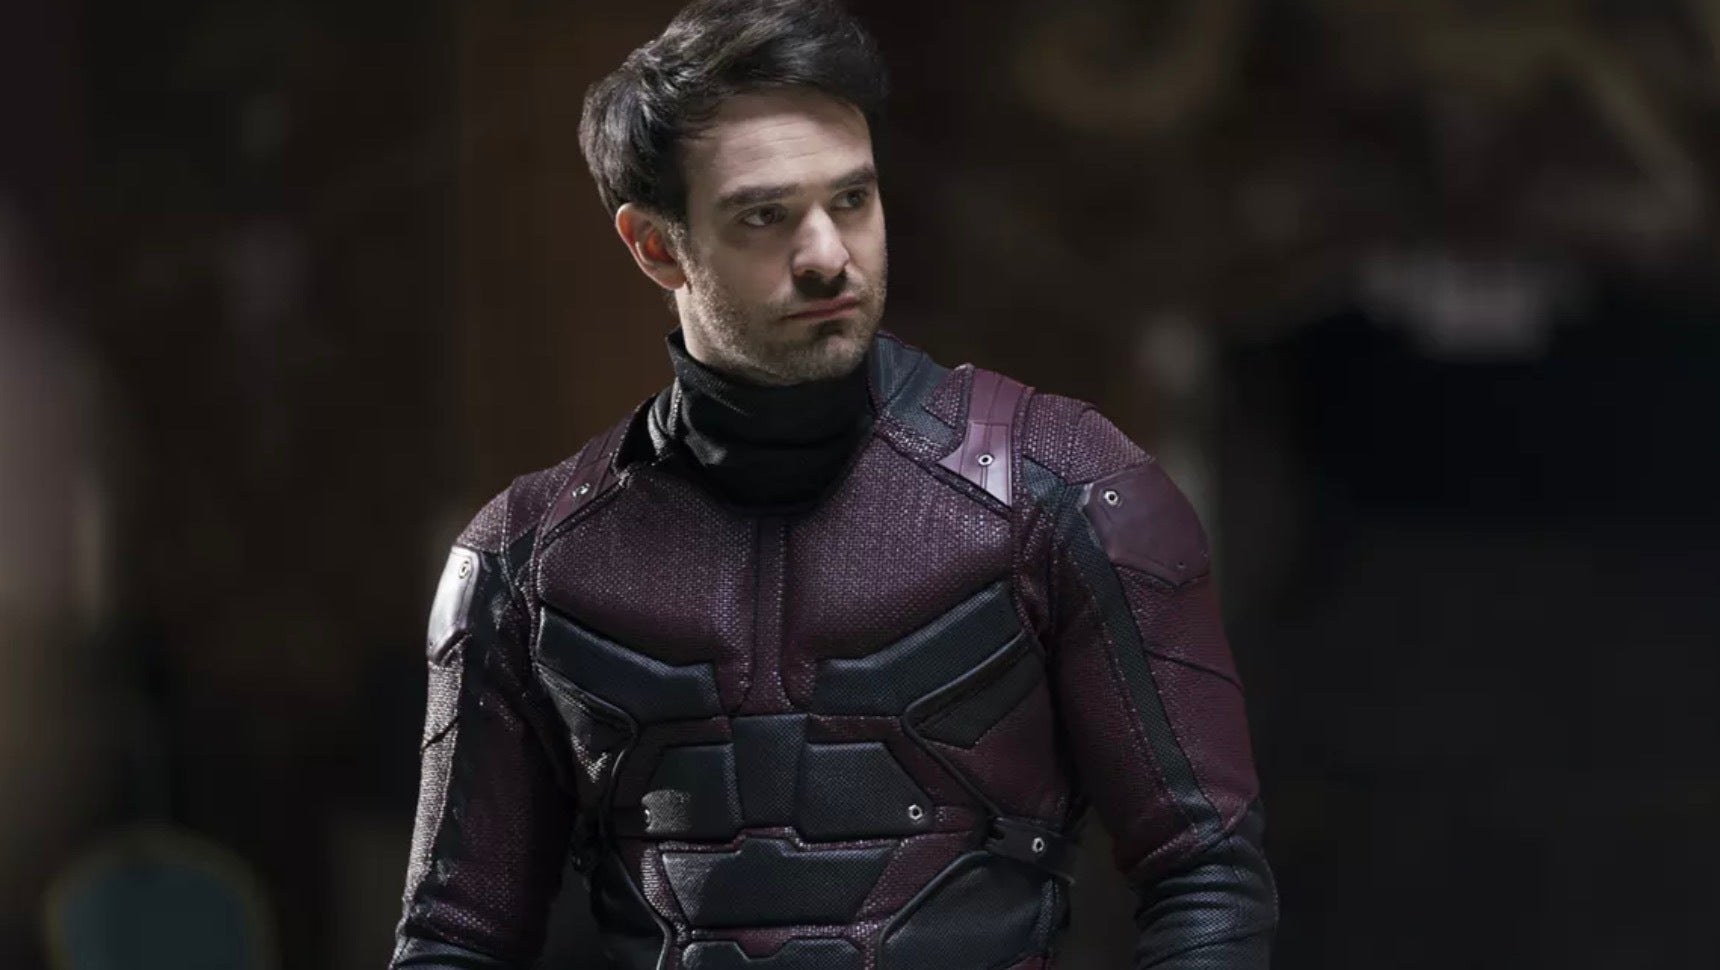 Charlie Cox Speaks Out About Daredevil's Cancellation: 'I'm Very Saddened'